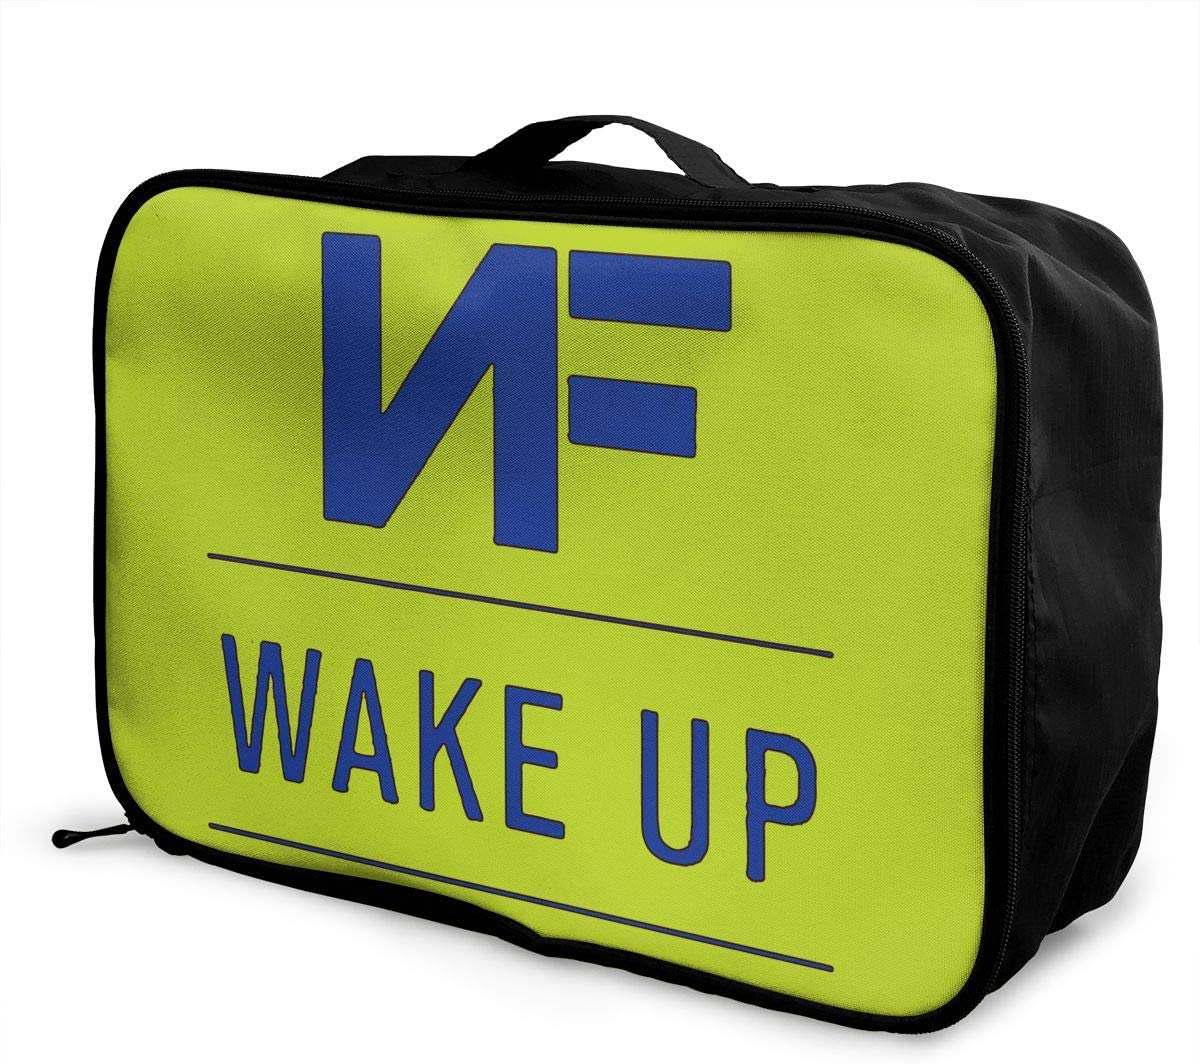 NF Wake Up Carry Lightweight Large Capacity Portable Outdoor Luggage Trolley Bag